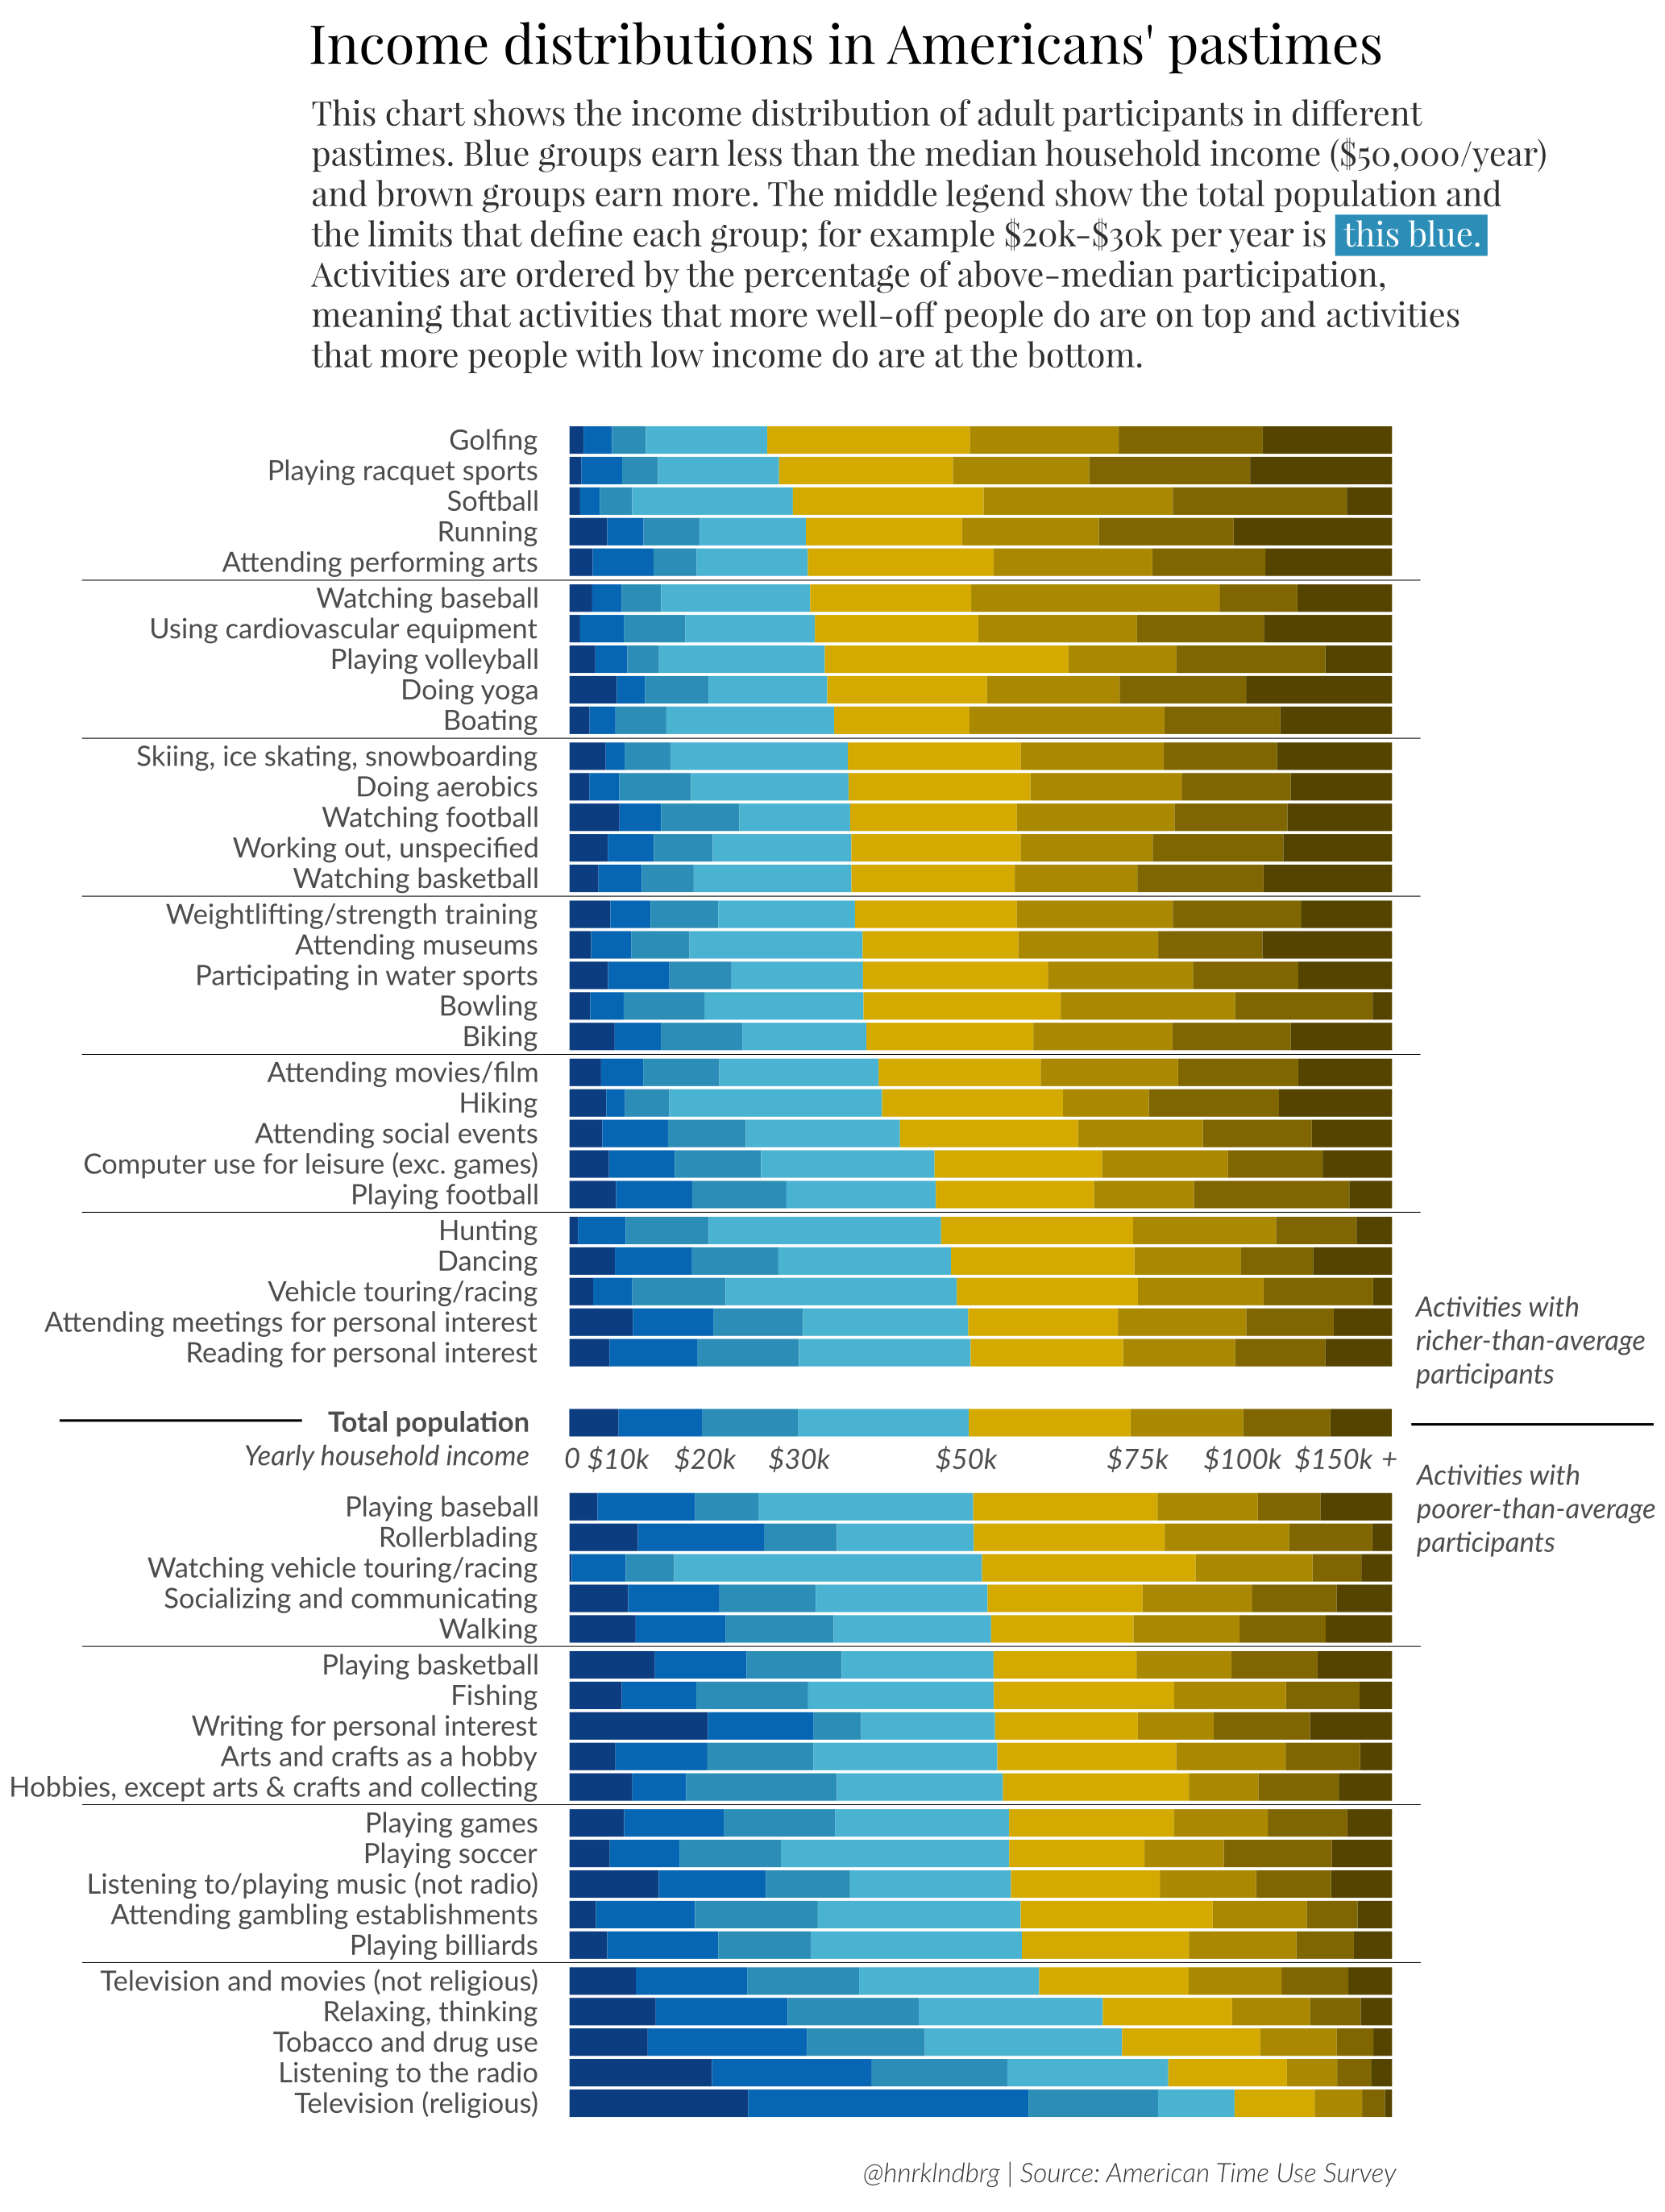 Here's How Americans Spend Their Time, Sorted by Income